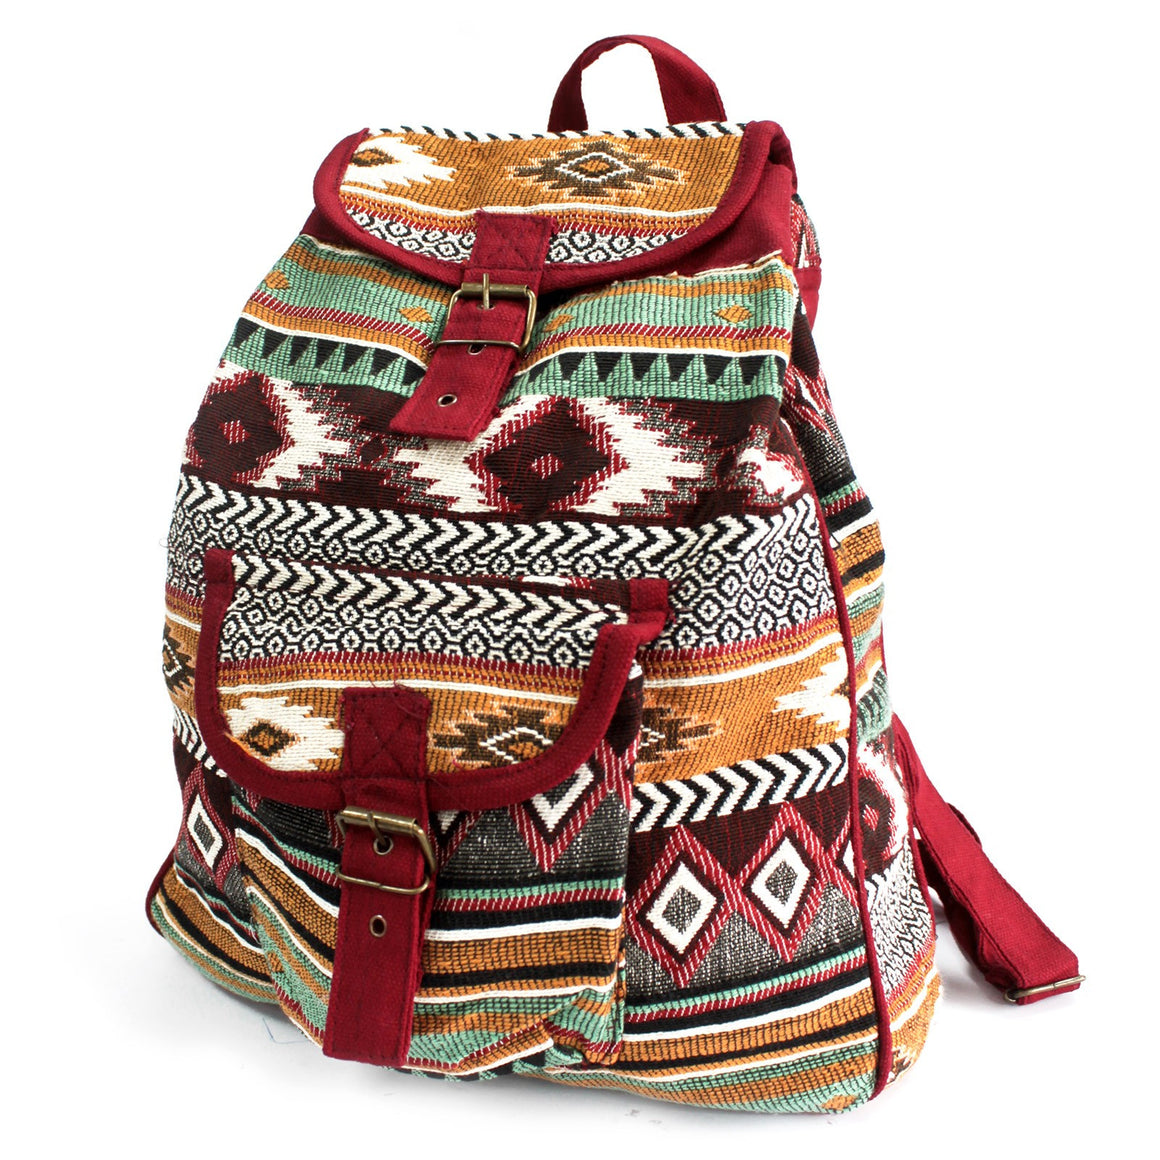 Bags, Chocolate, Ethnic Backpacks/Travel Bags, Ethnic Nepali Backpack, Jacquard Bag, Outdoors, Pink, Small Nepali Backpacks, Teal, Travel